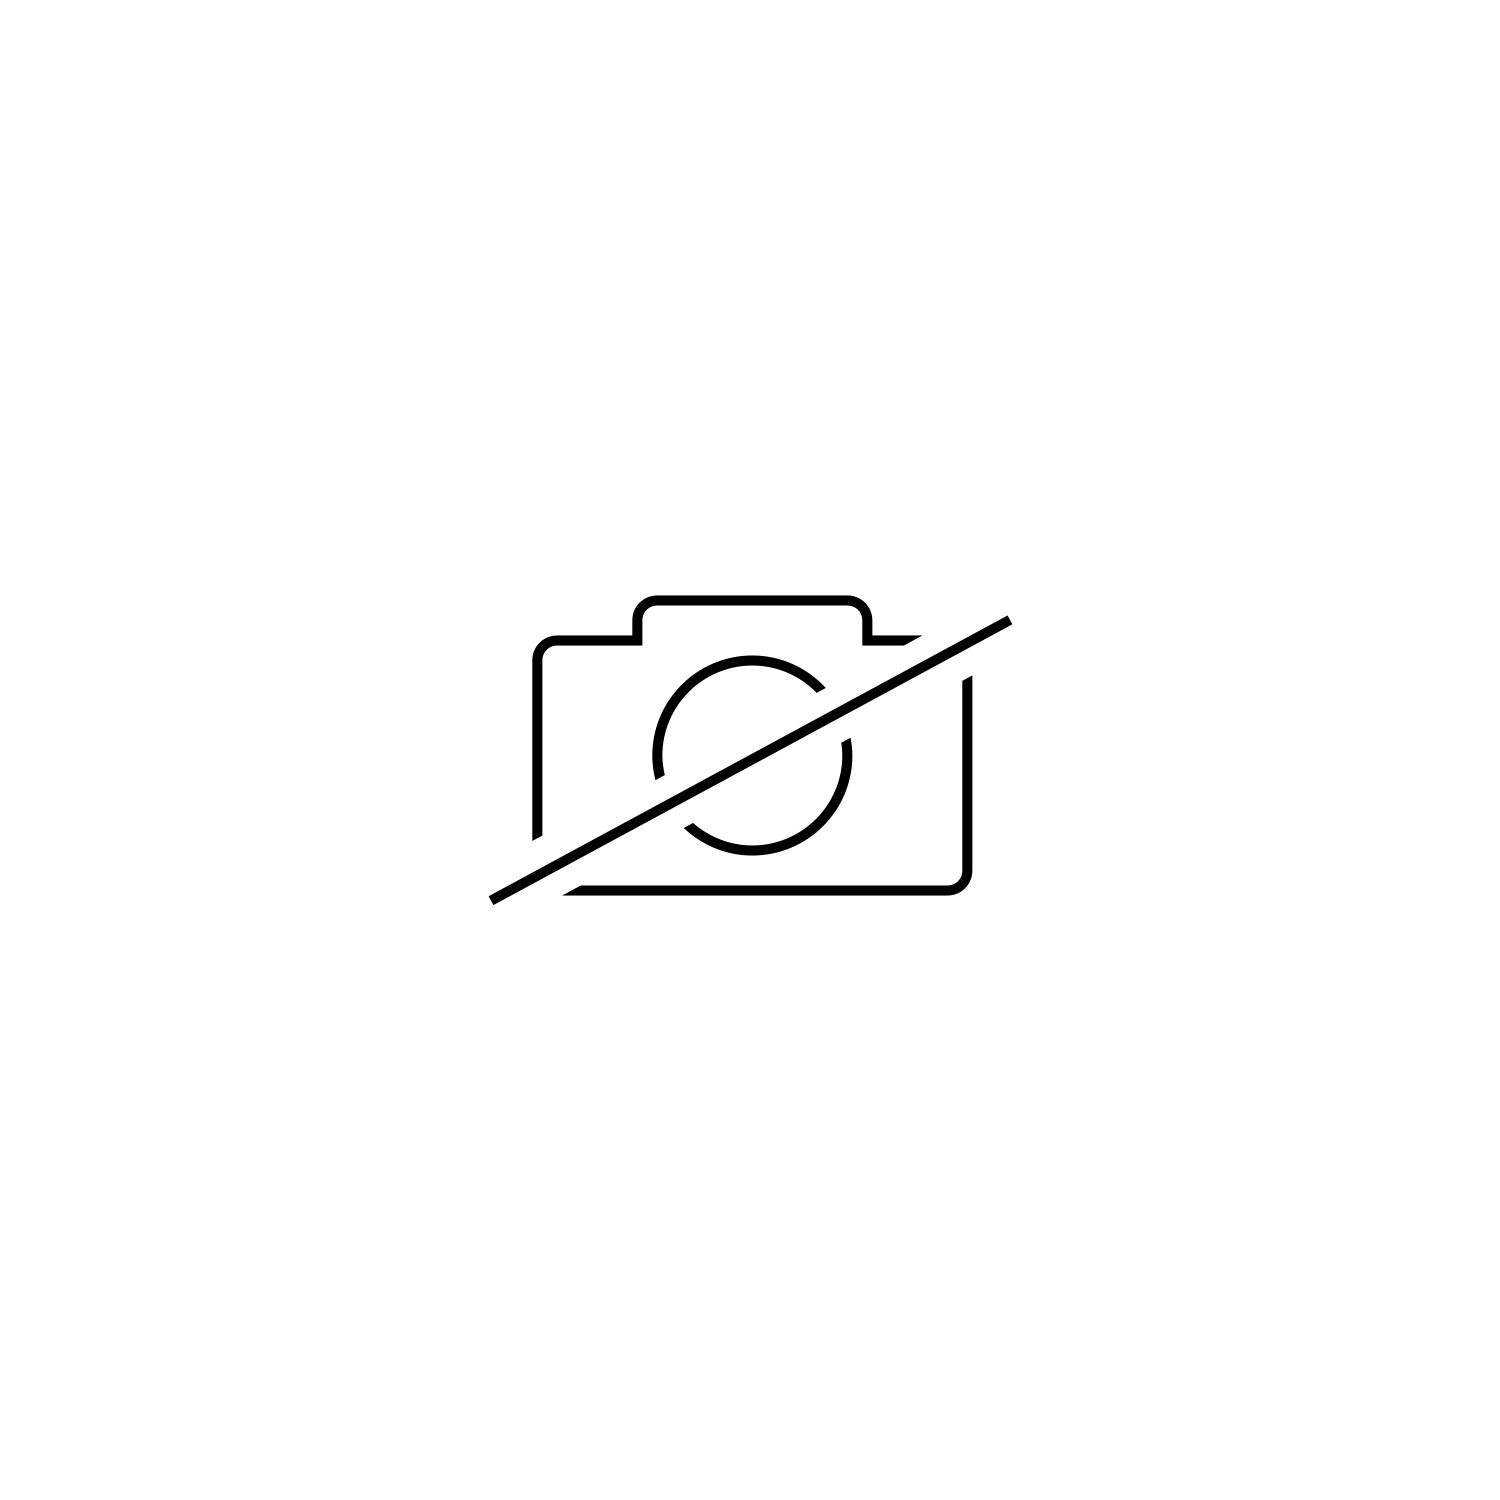 Audi Sport Poloshirt, Womens, white/grey, XL